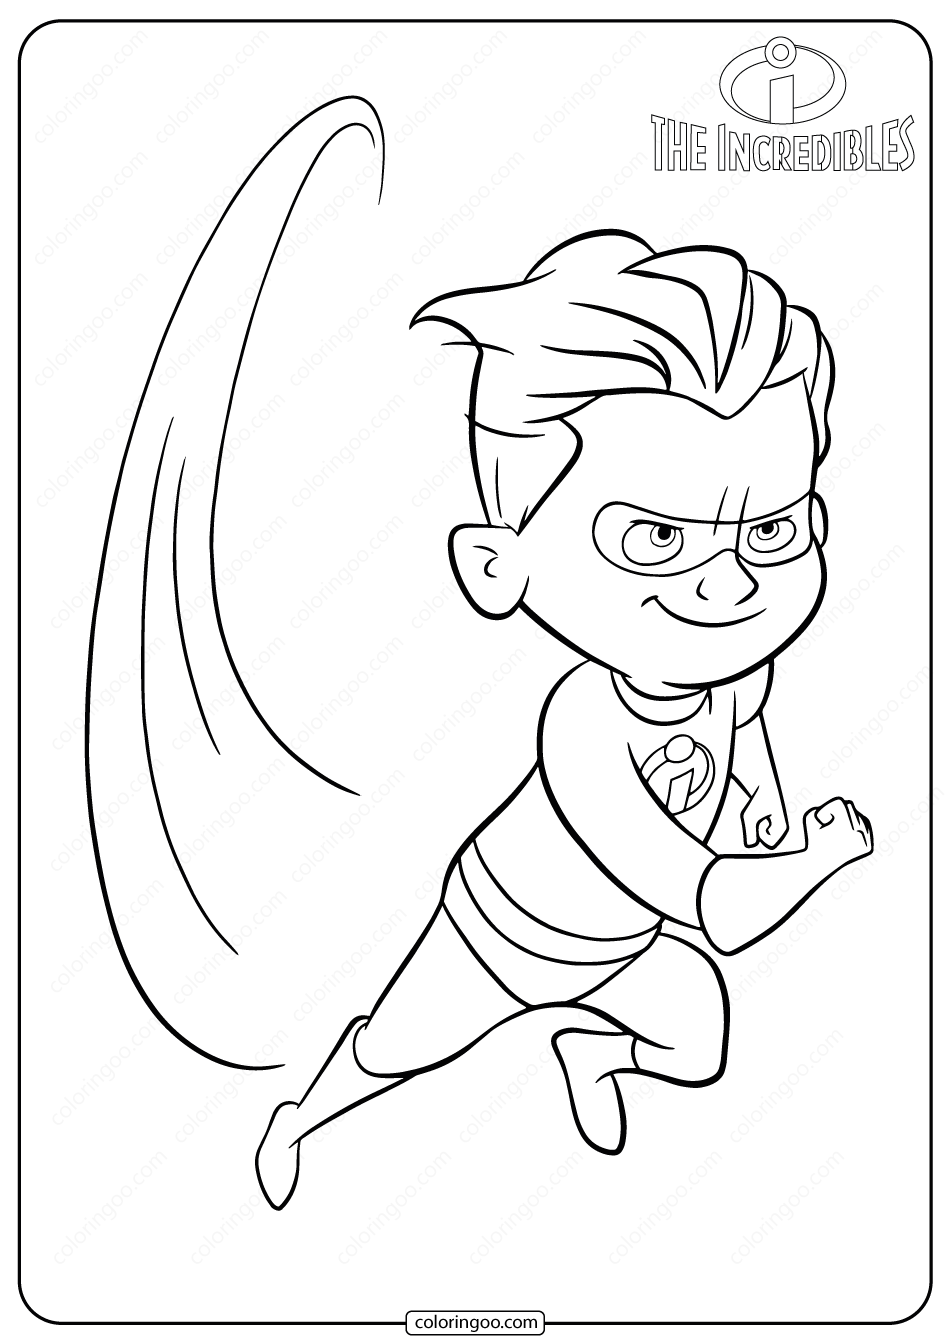 Disney The Incredibles Dash Coloring Pages in 2020 The